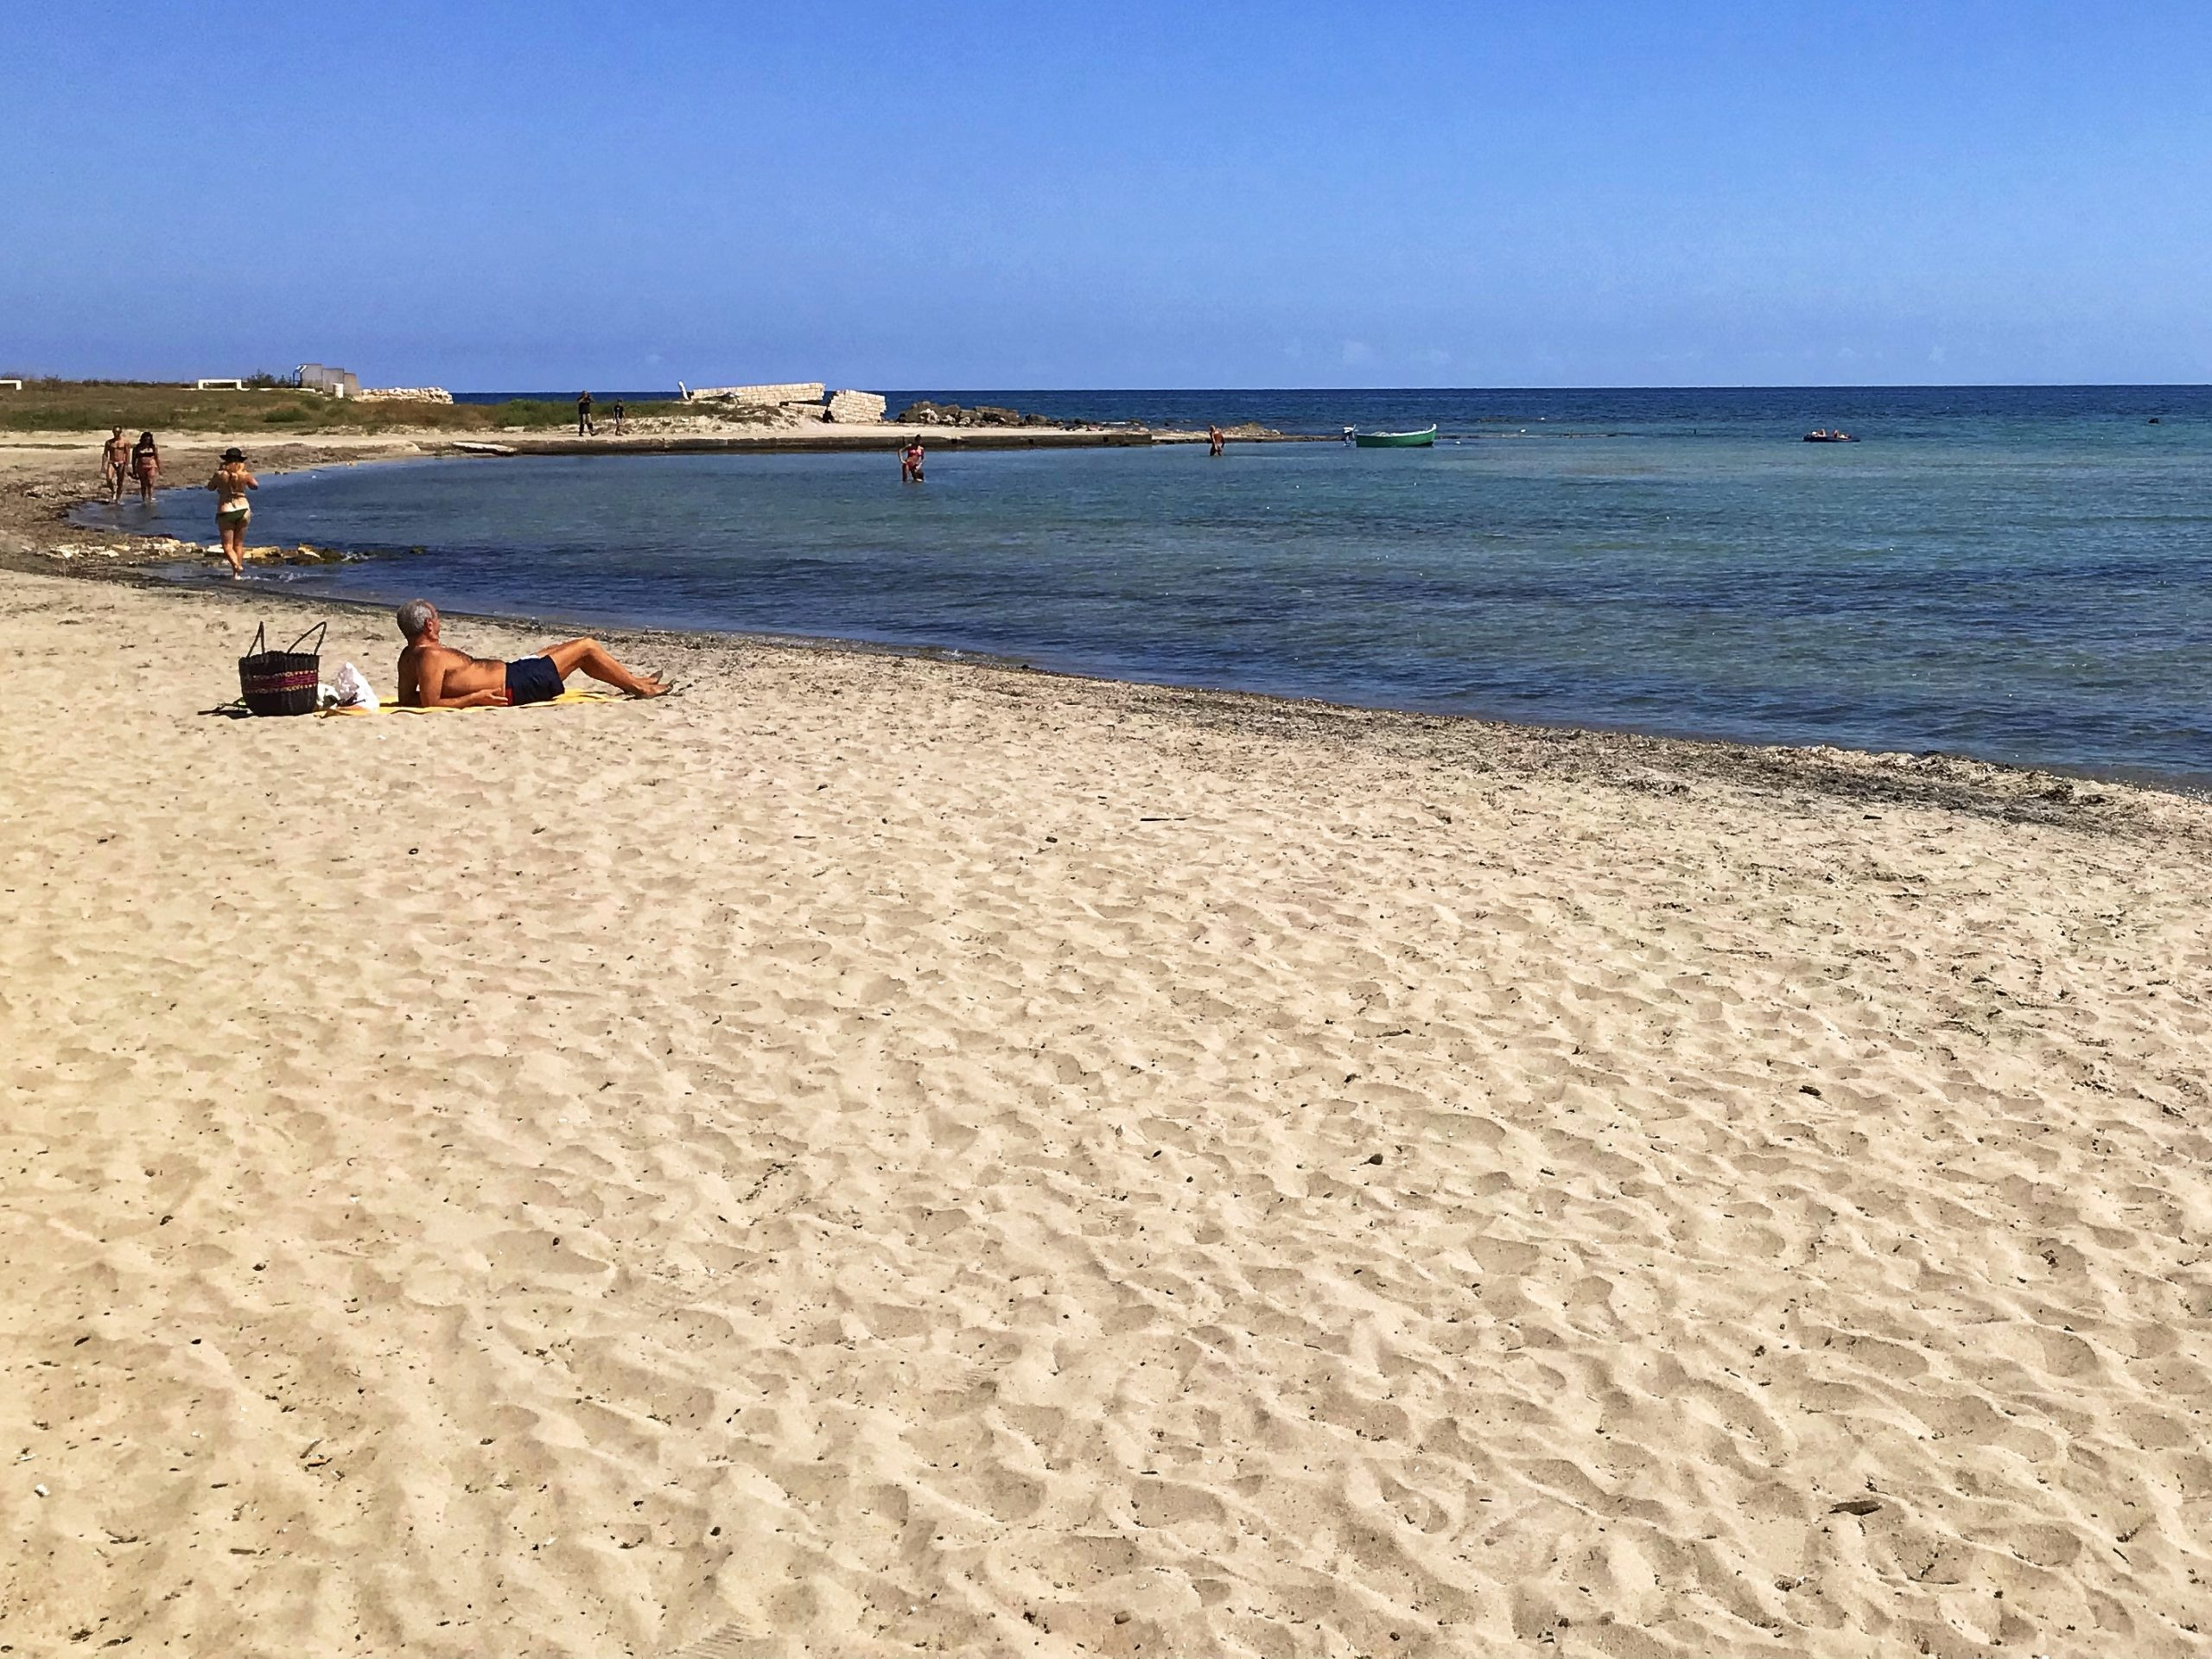 Puglia's best beaches are found in Salento and Gargano - this long sandy beach is the popular gay D'Ayala beach.